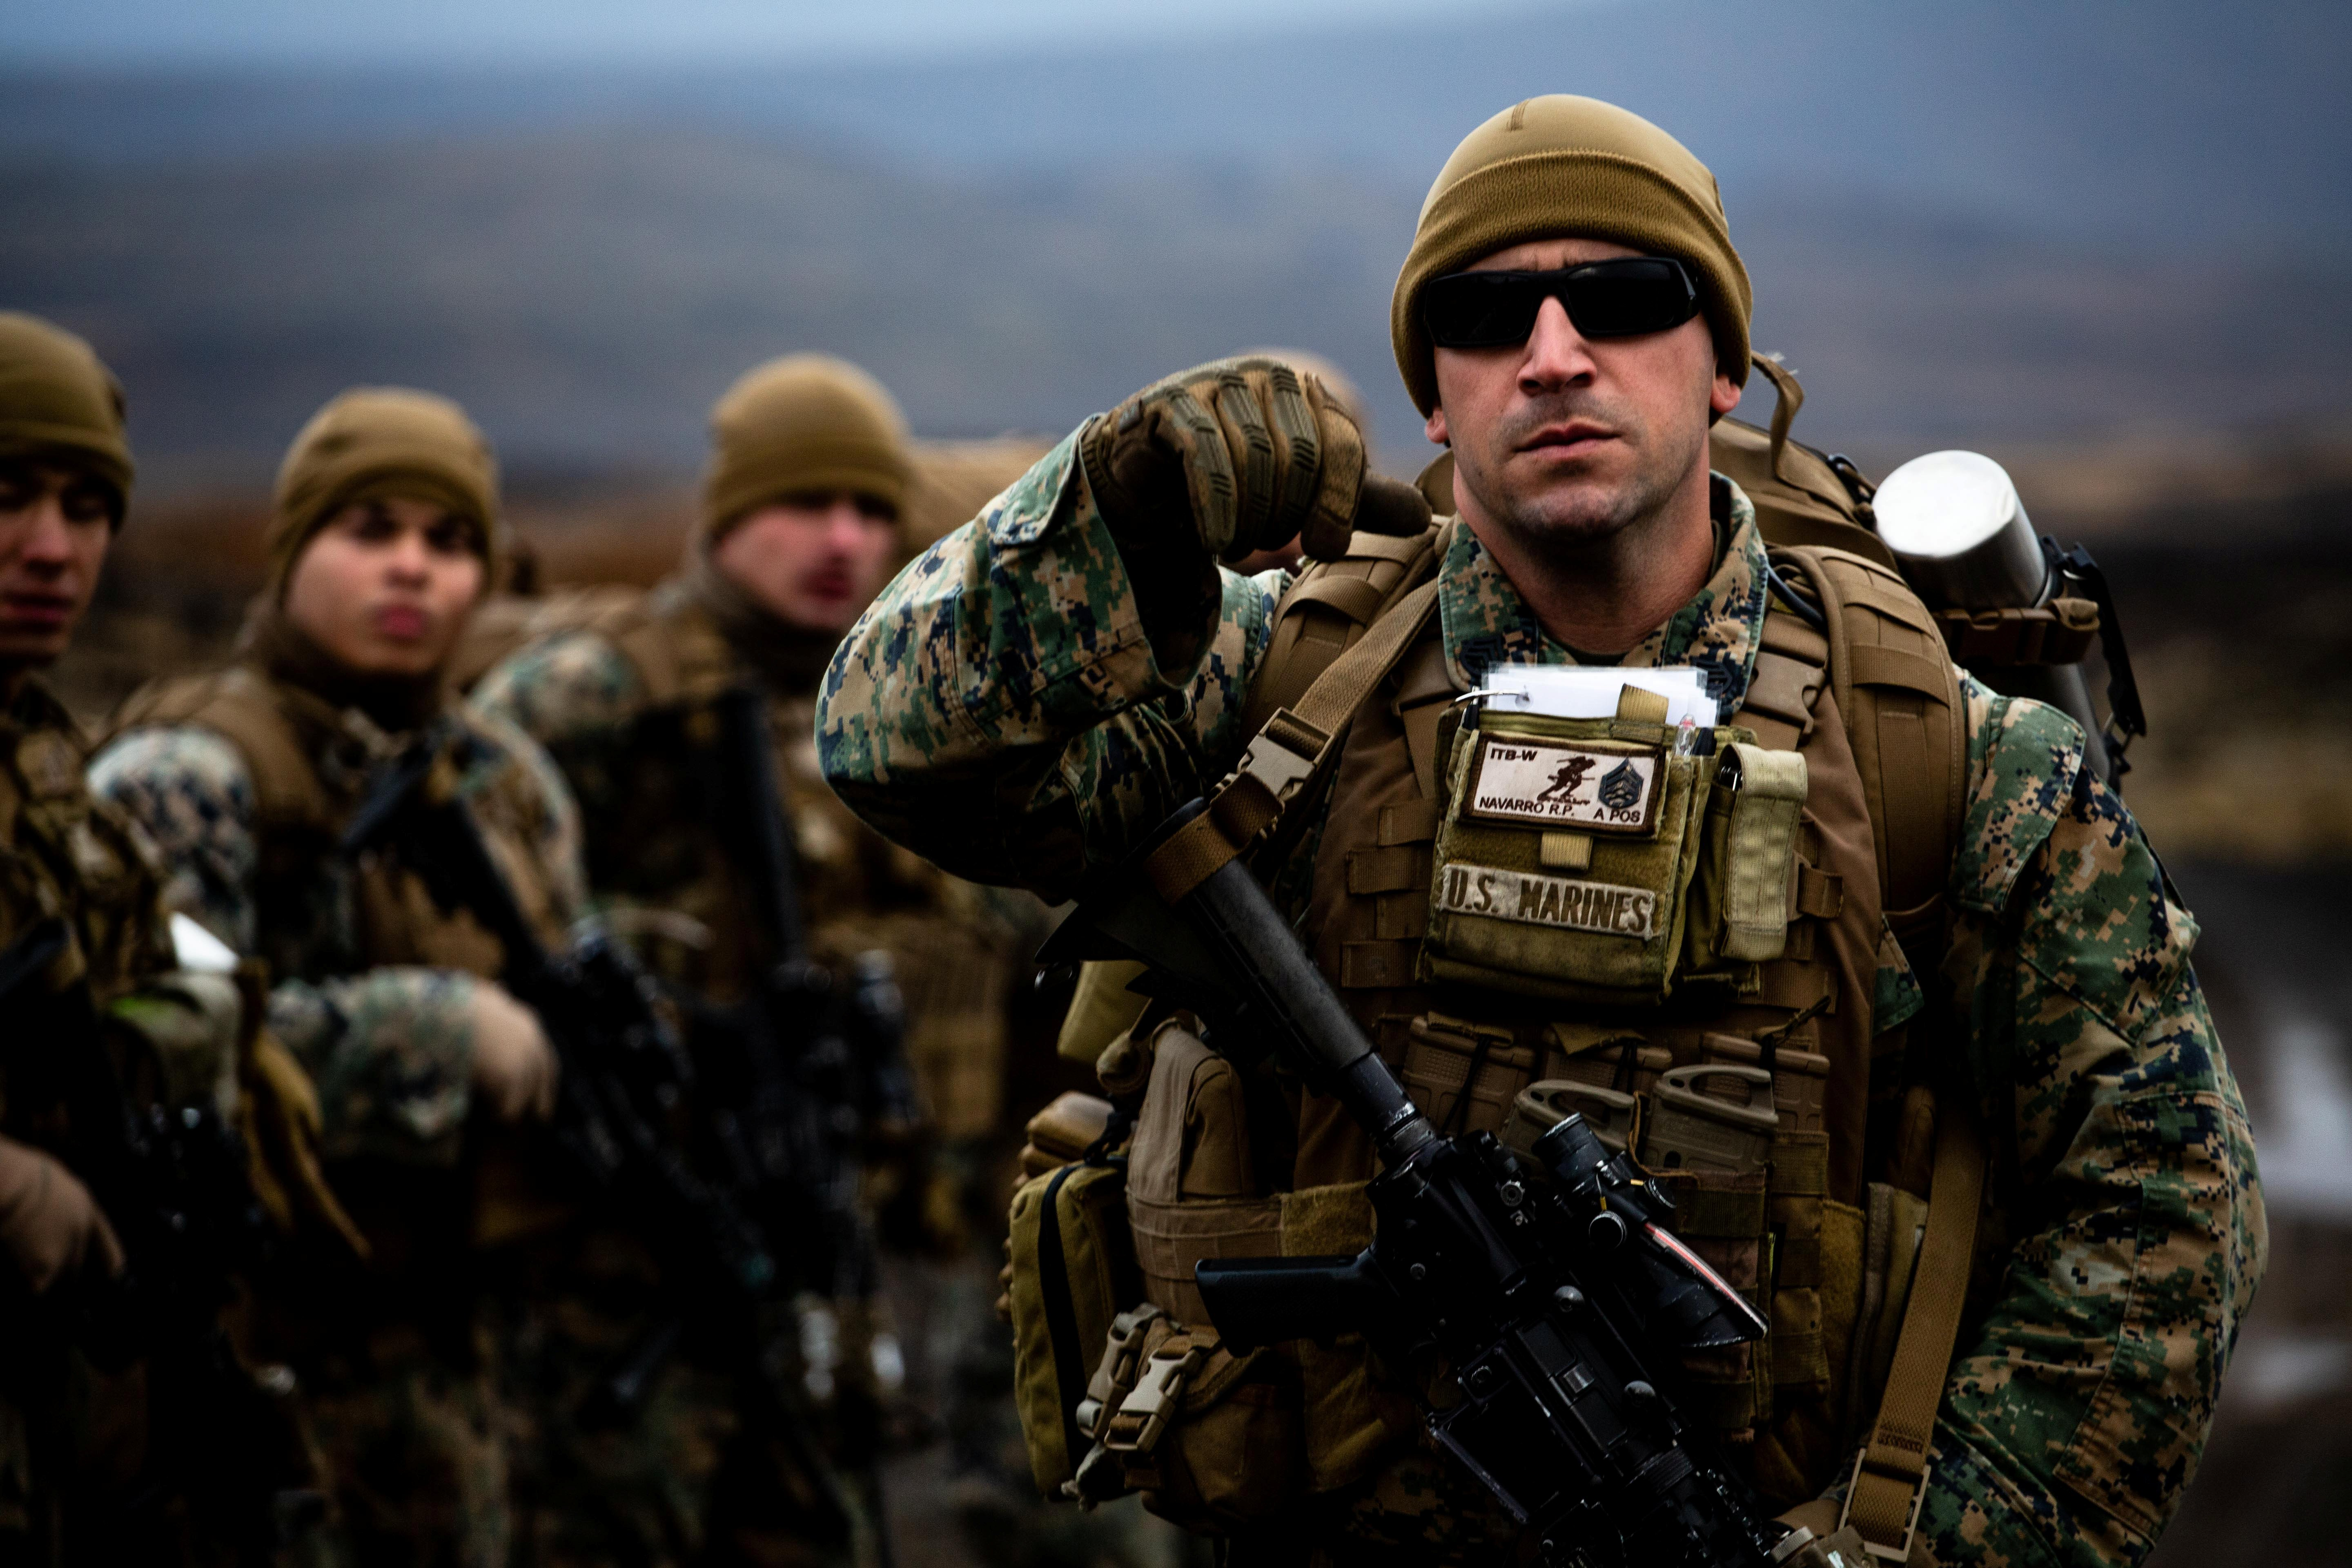 As winter comes, NATO kicks off largest maneuvers since Cold